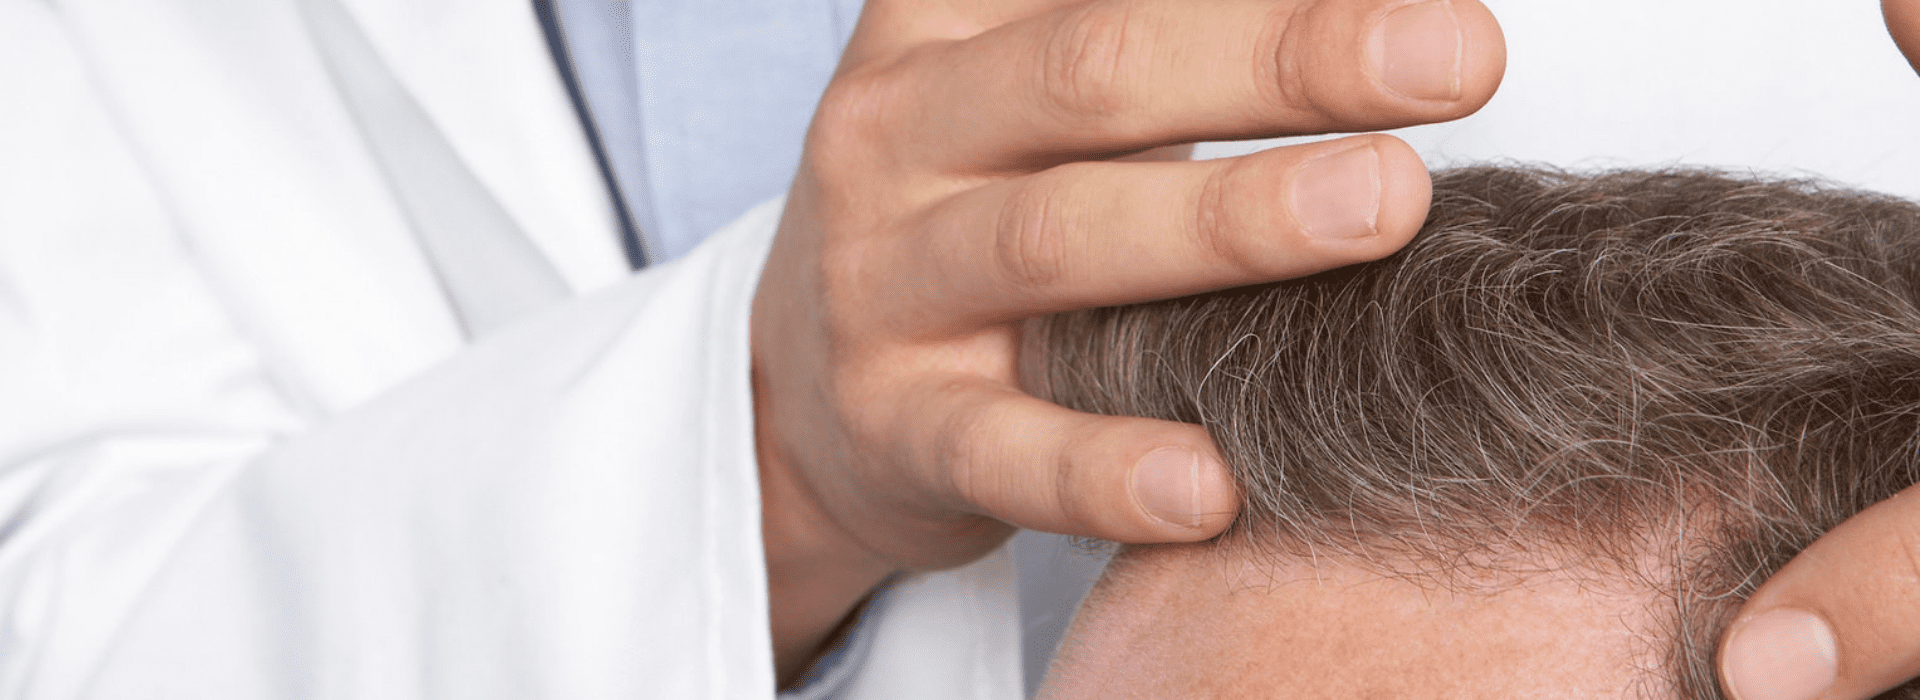 What to expect after a hair transplant